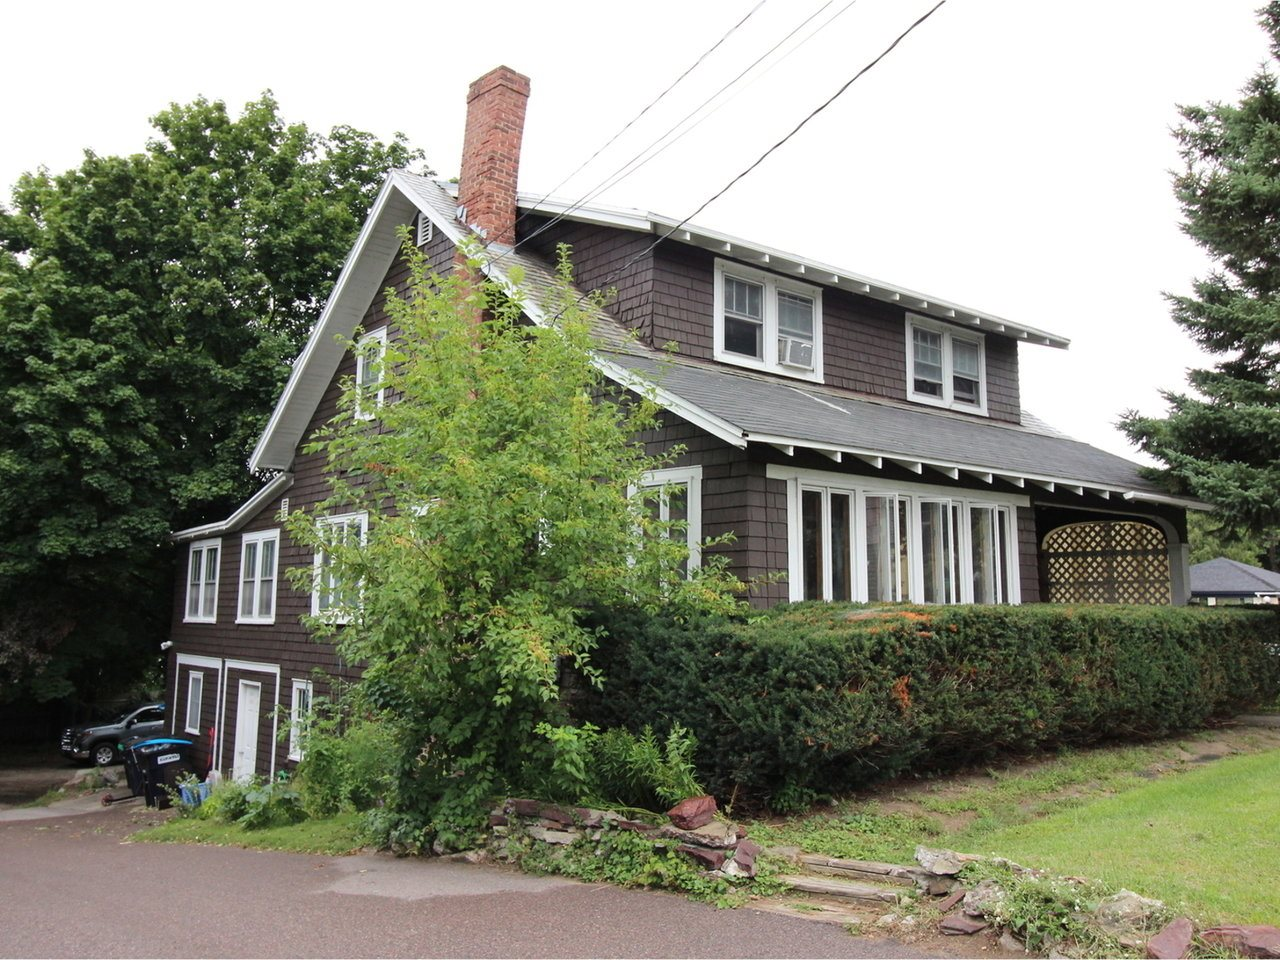 Sold property in Burlington